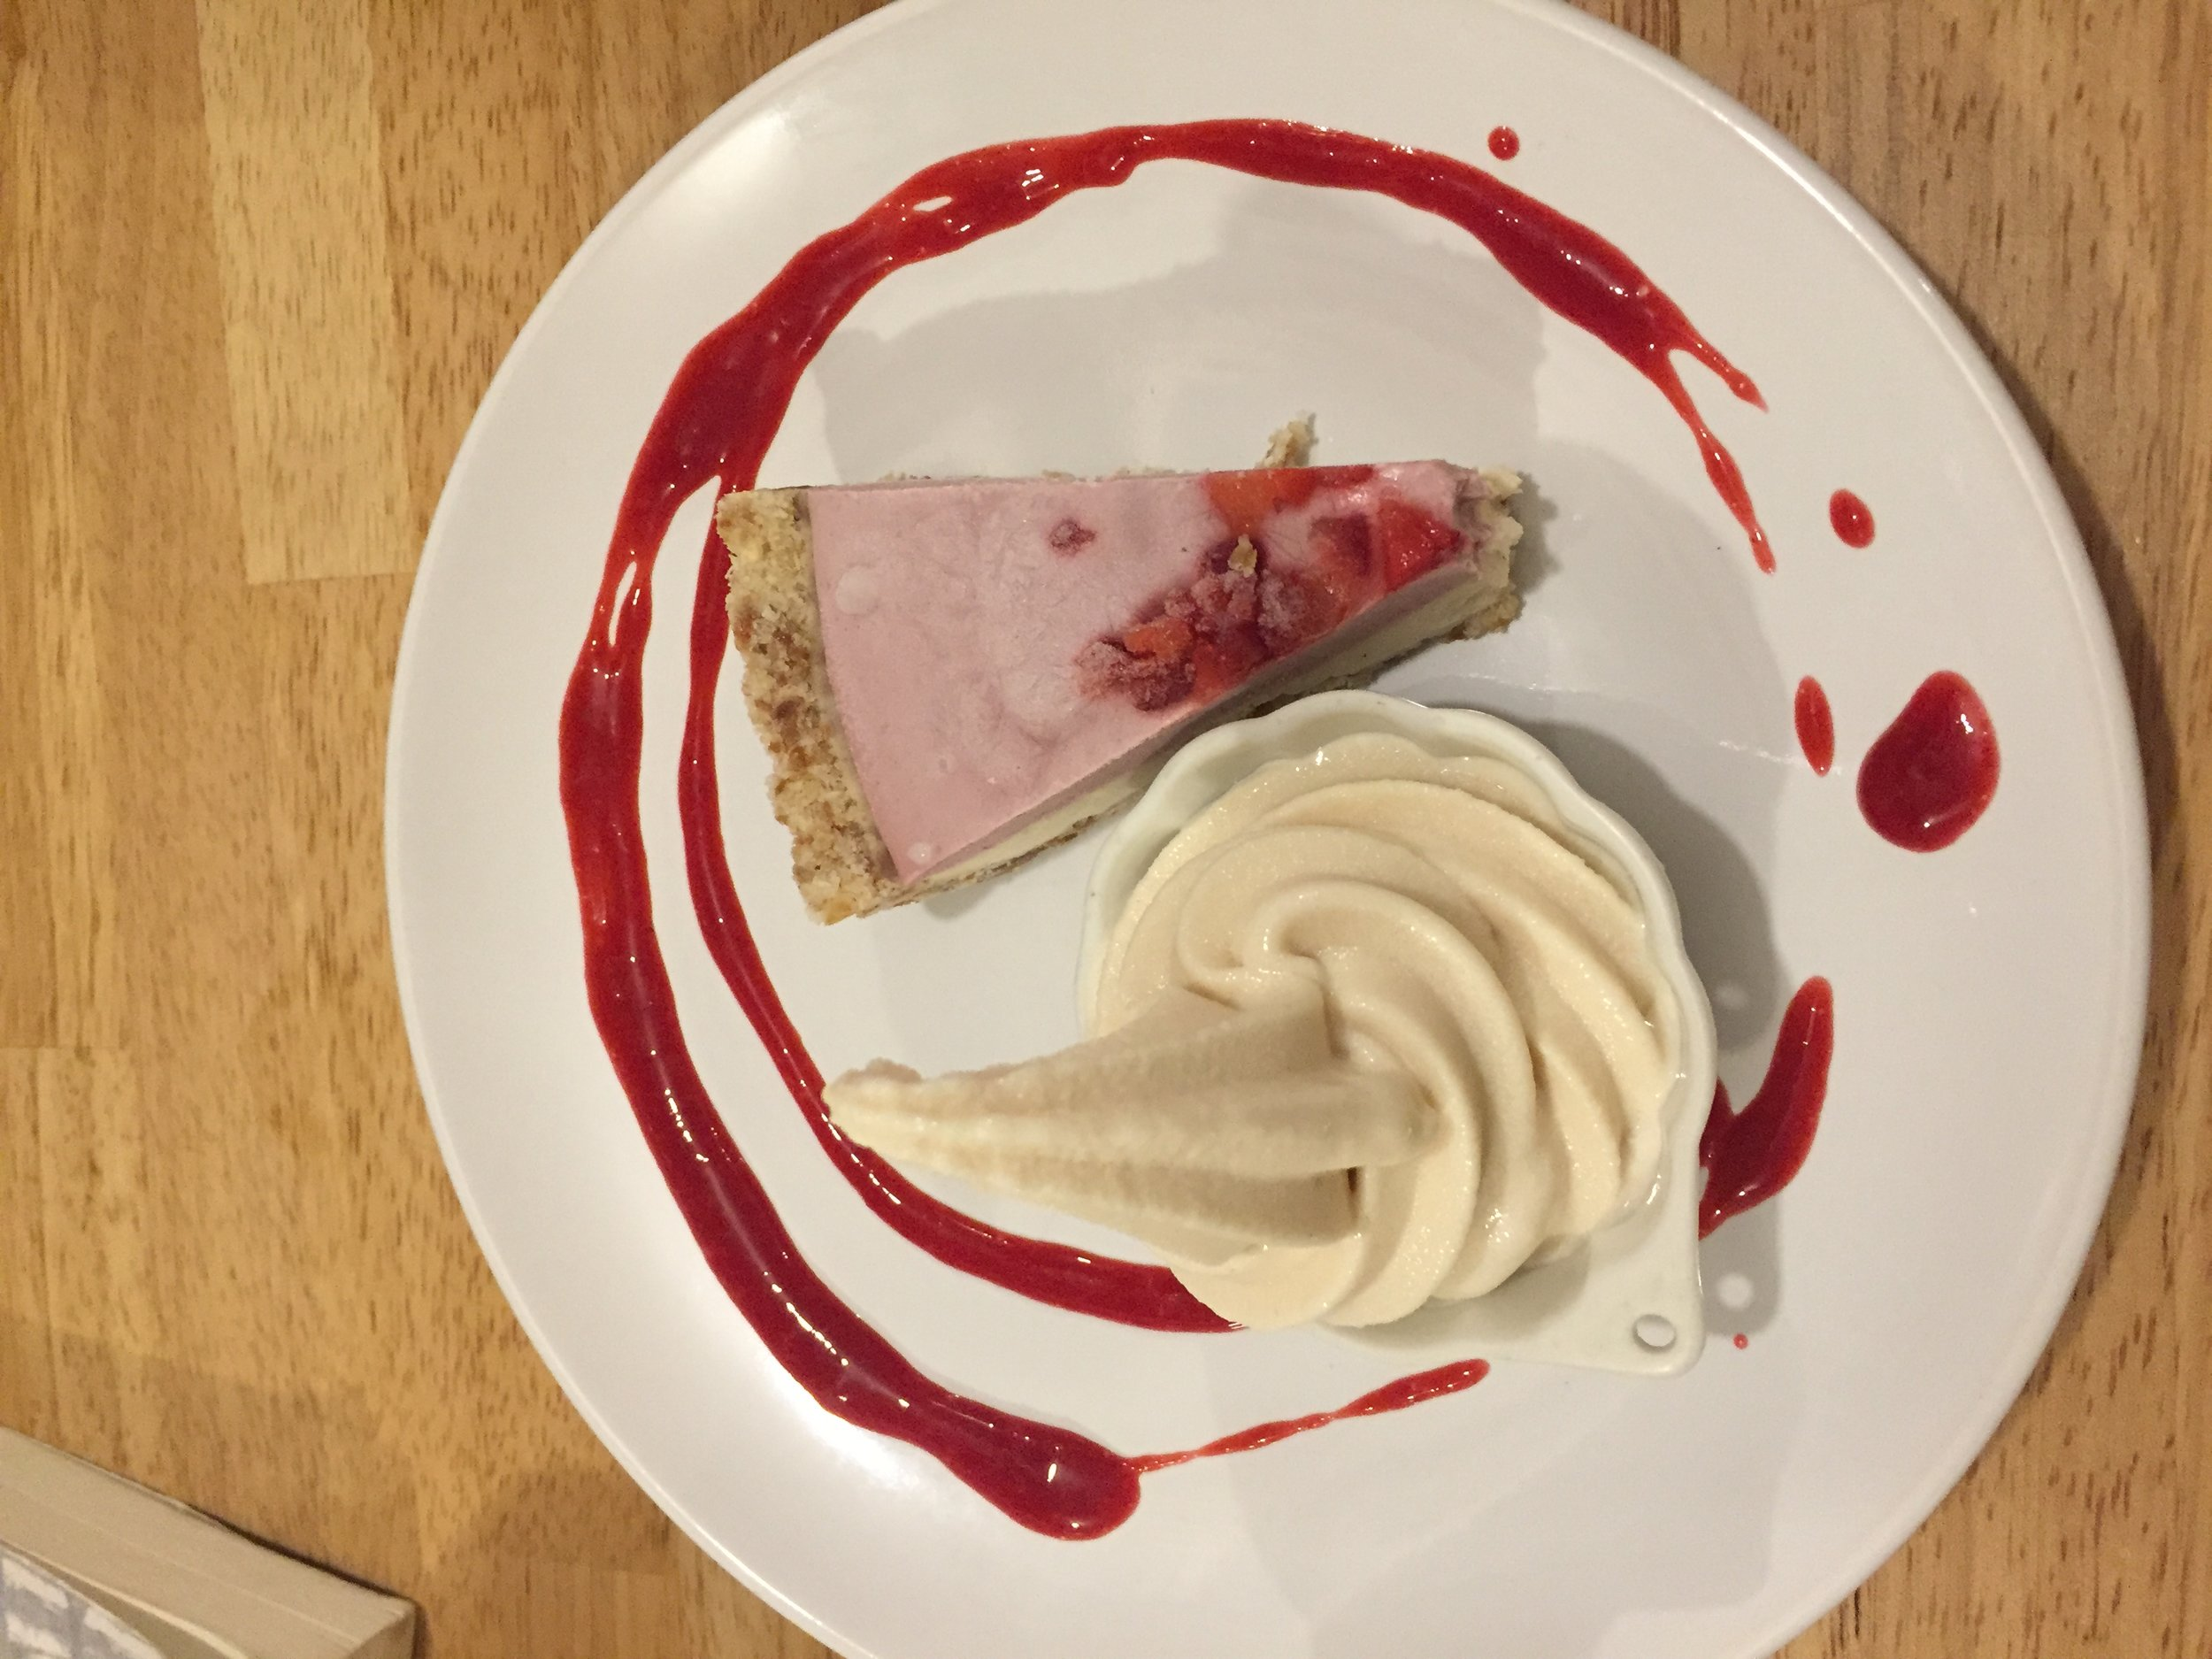 raw, vegan, gluten free plant-based dessert pie in Osaka Japan